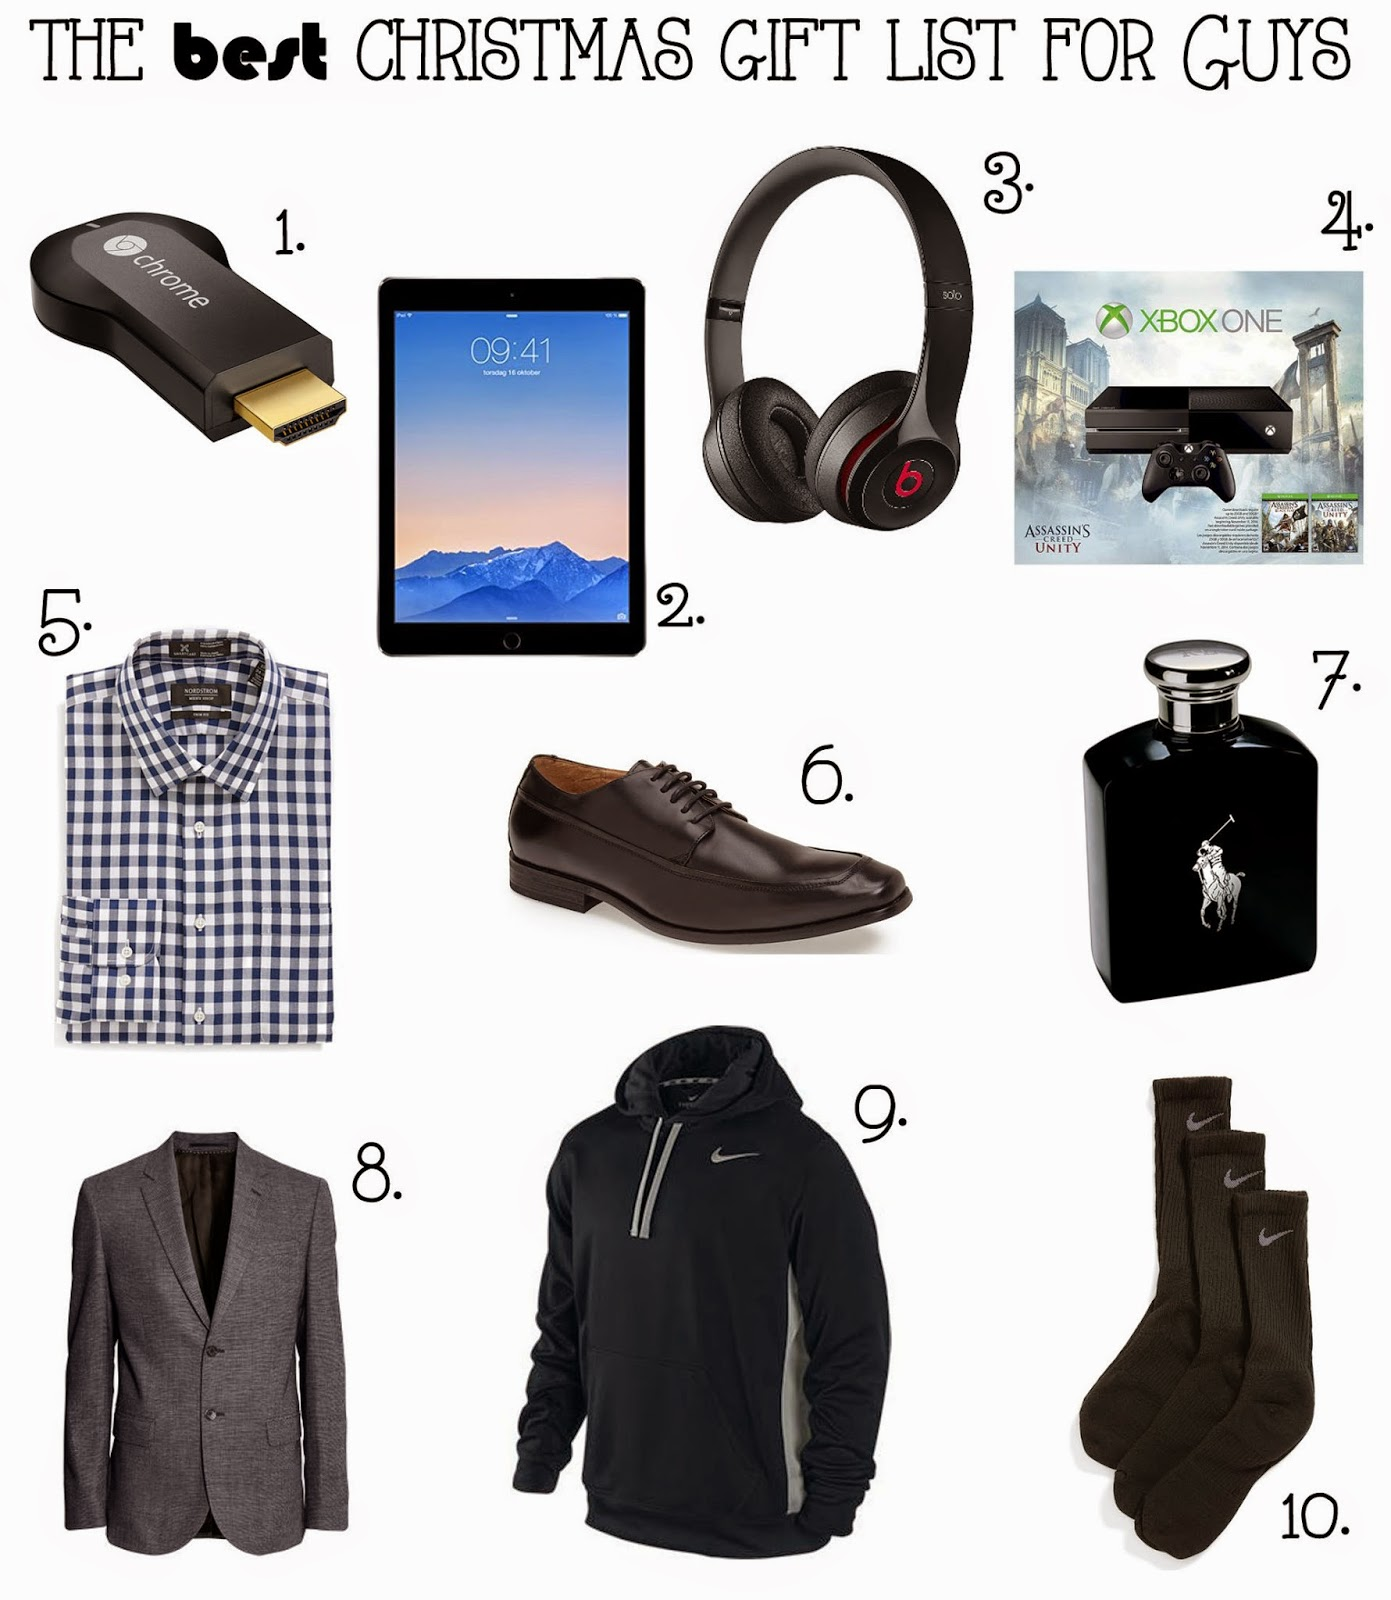 Brooke & Jane: The Best Christmas Gift List for Guys